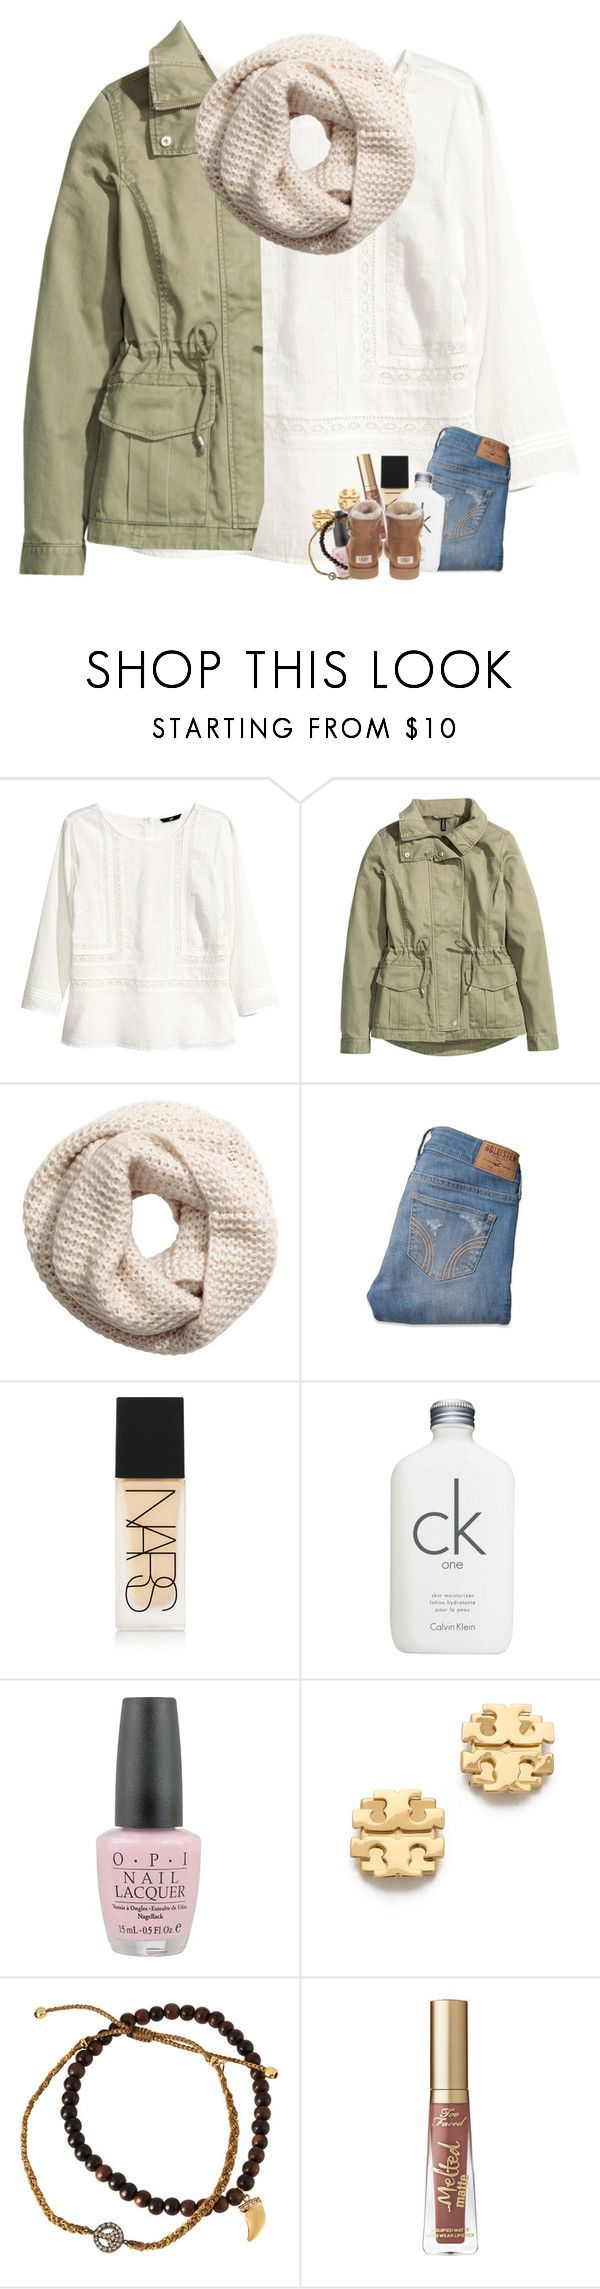 fall hm vibes by madelinelurene ❤ liked on Polyvore featuring HM, Hollister Co., NARS Cosmetics, Calvin Klein, OPI, Tory Burch, Tai, Too Faced Cosmetics and UGG Australia